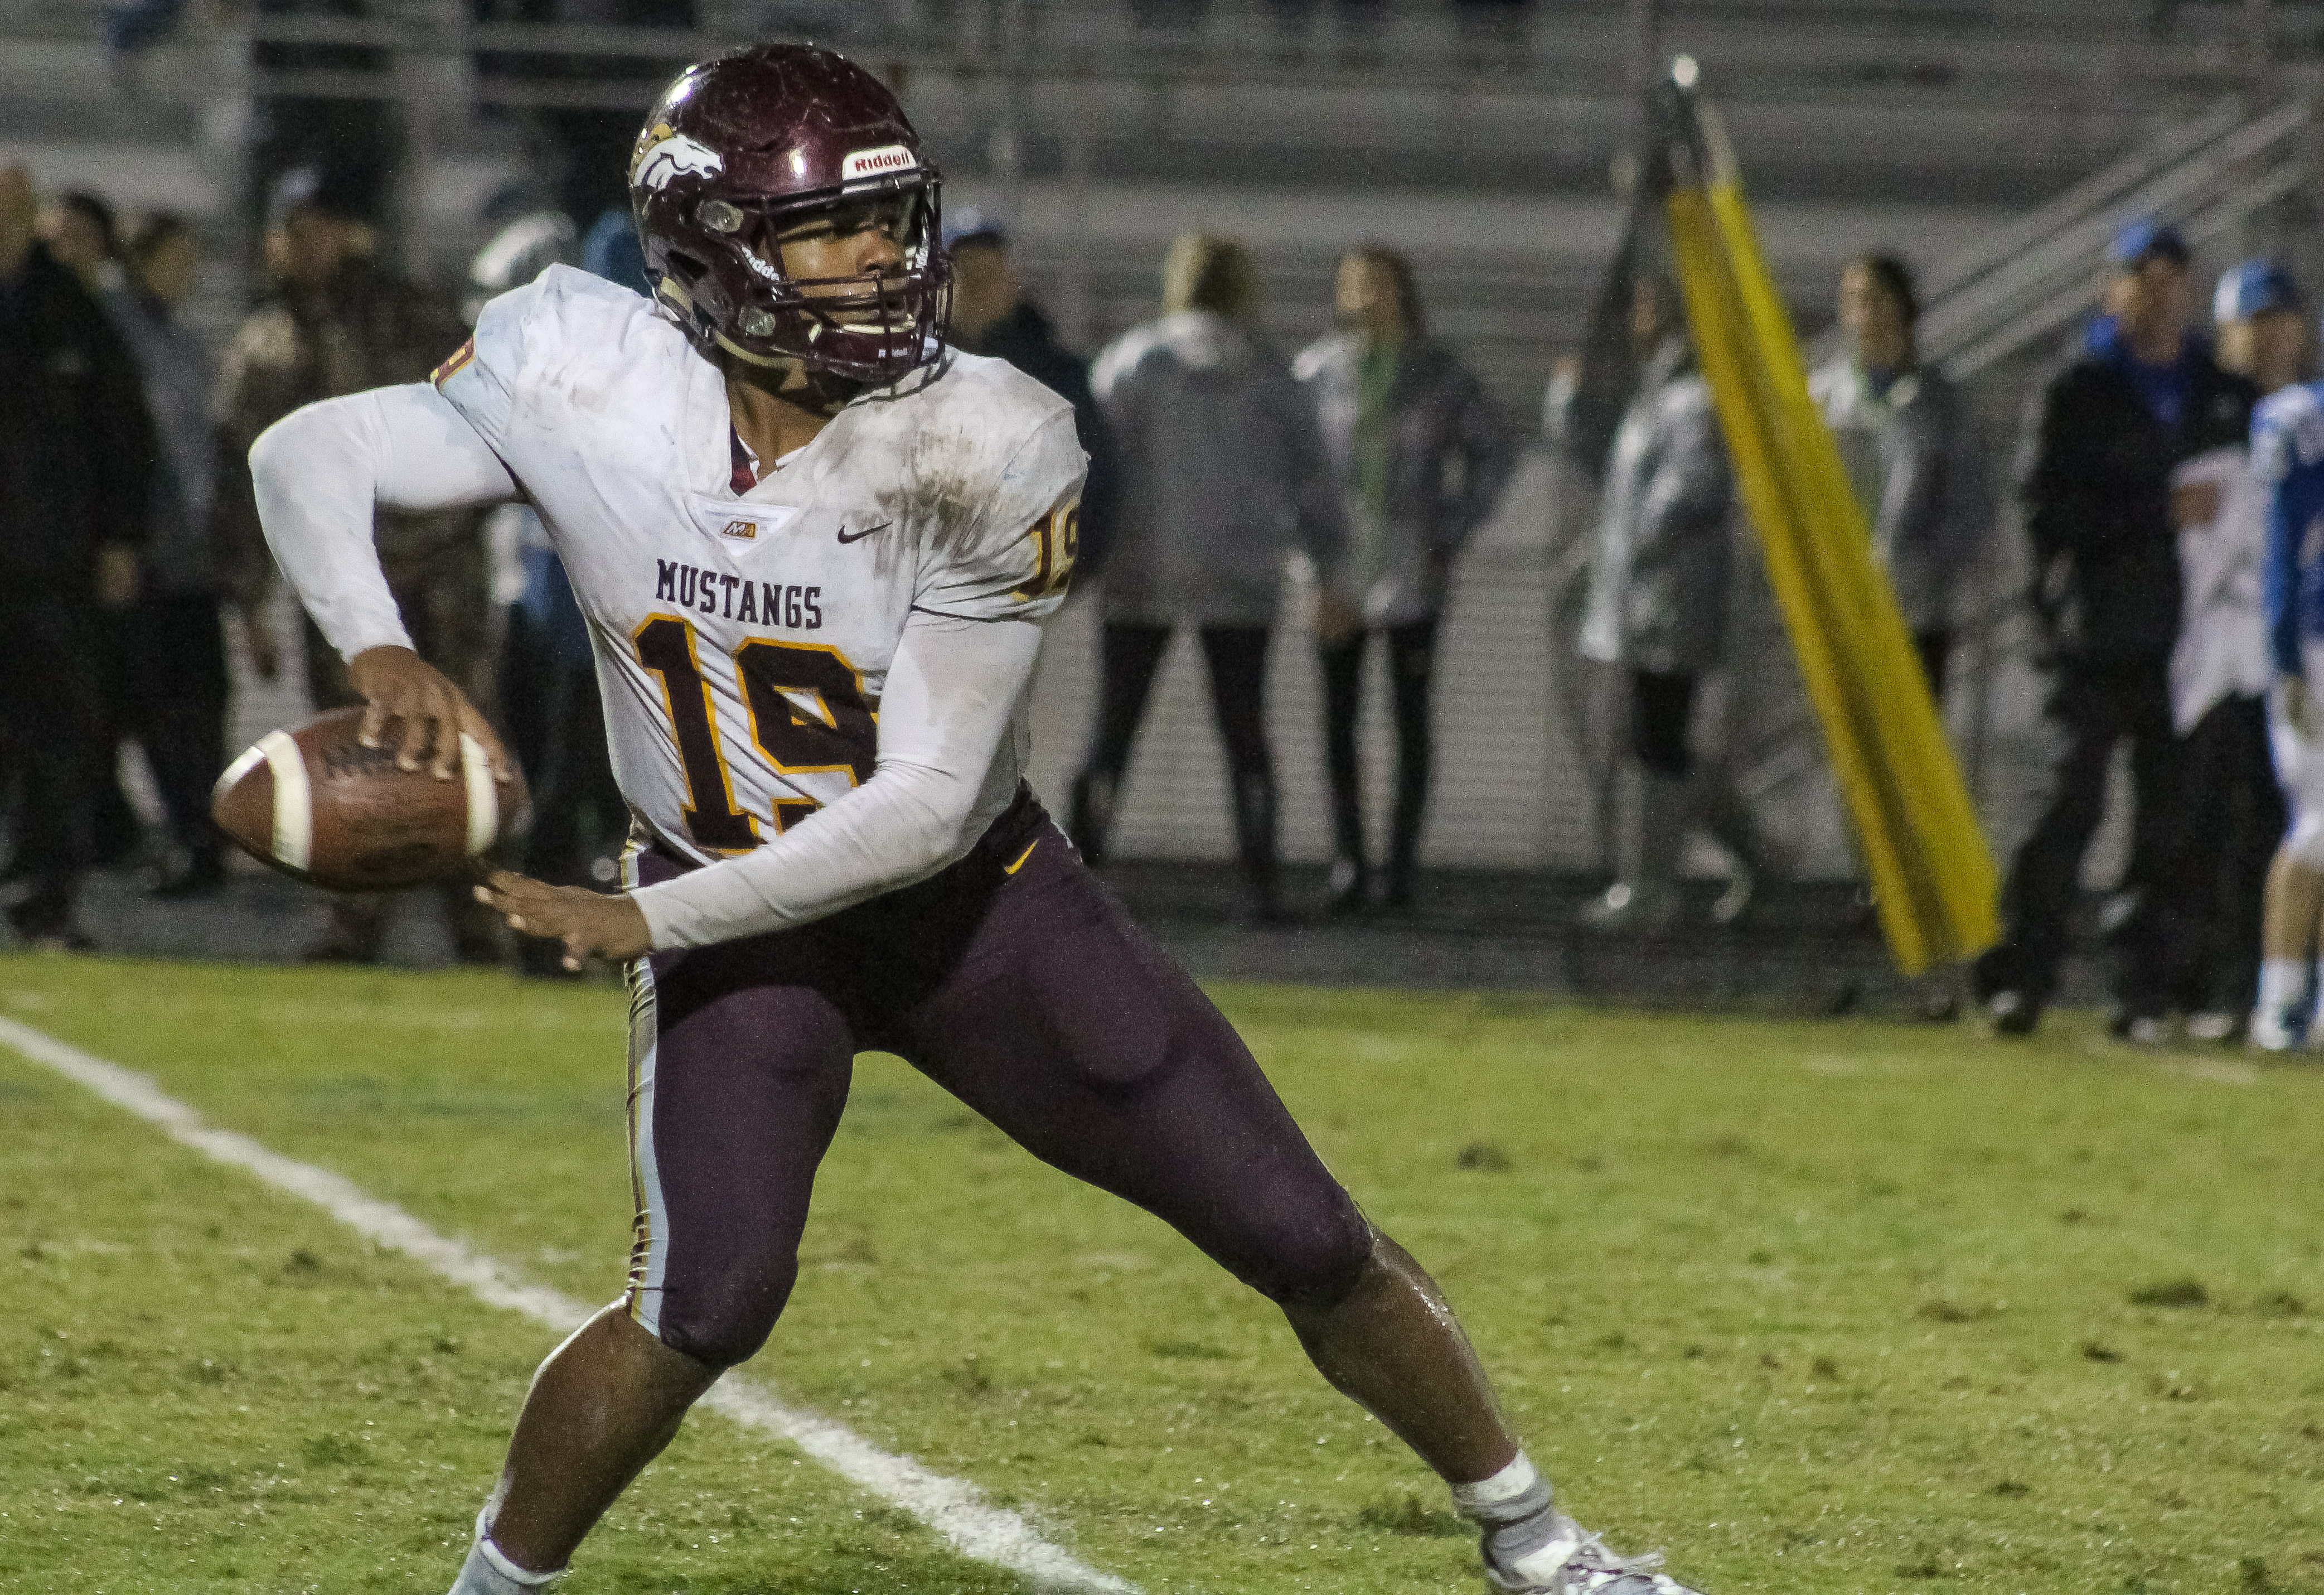 Madison Academy QB Avery Seaton